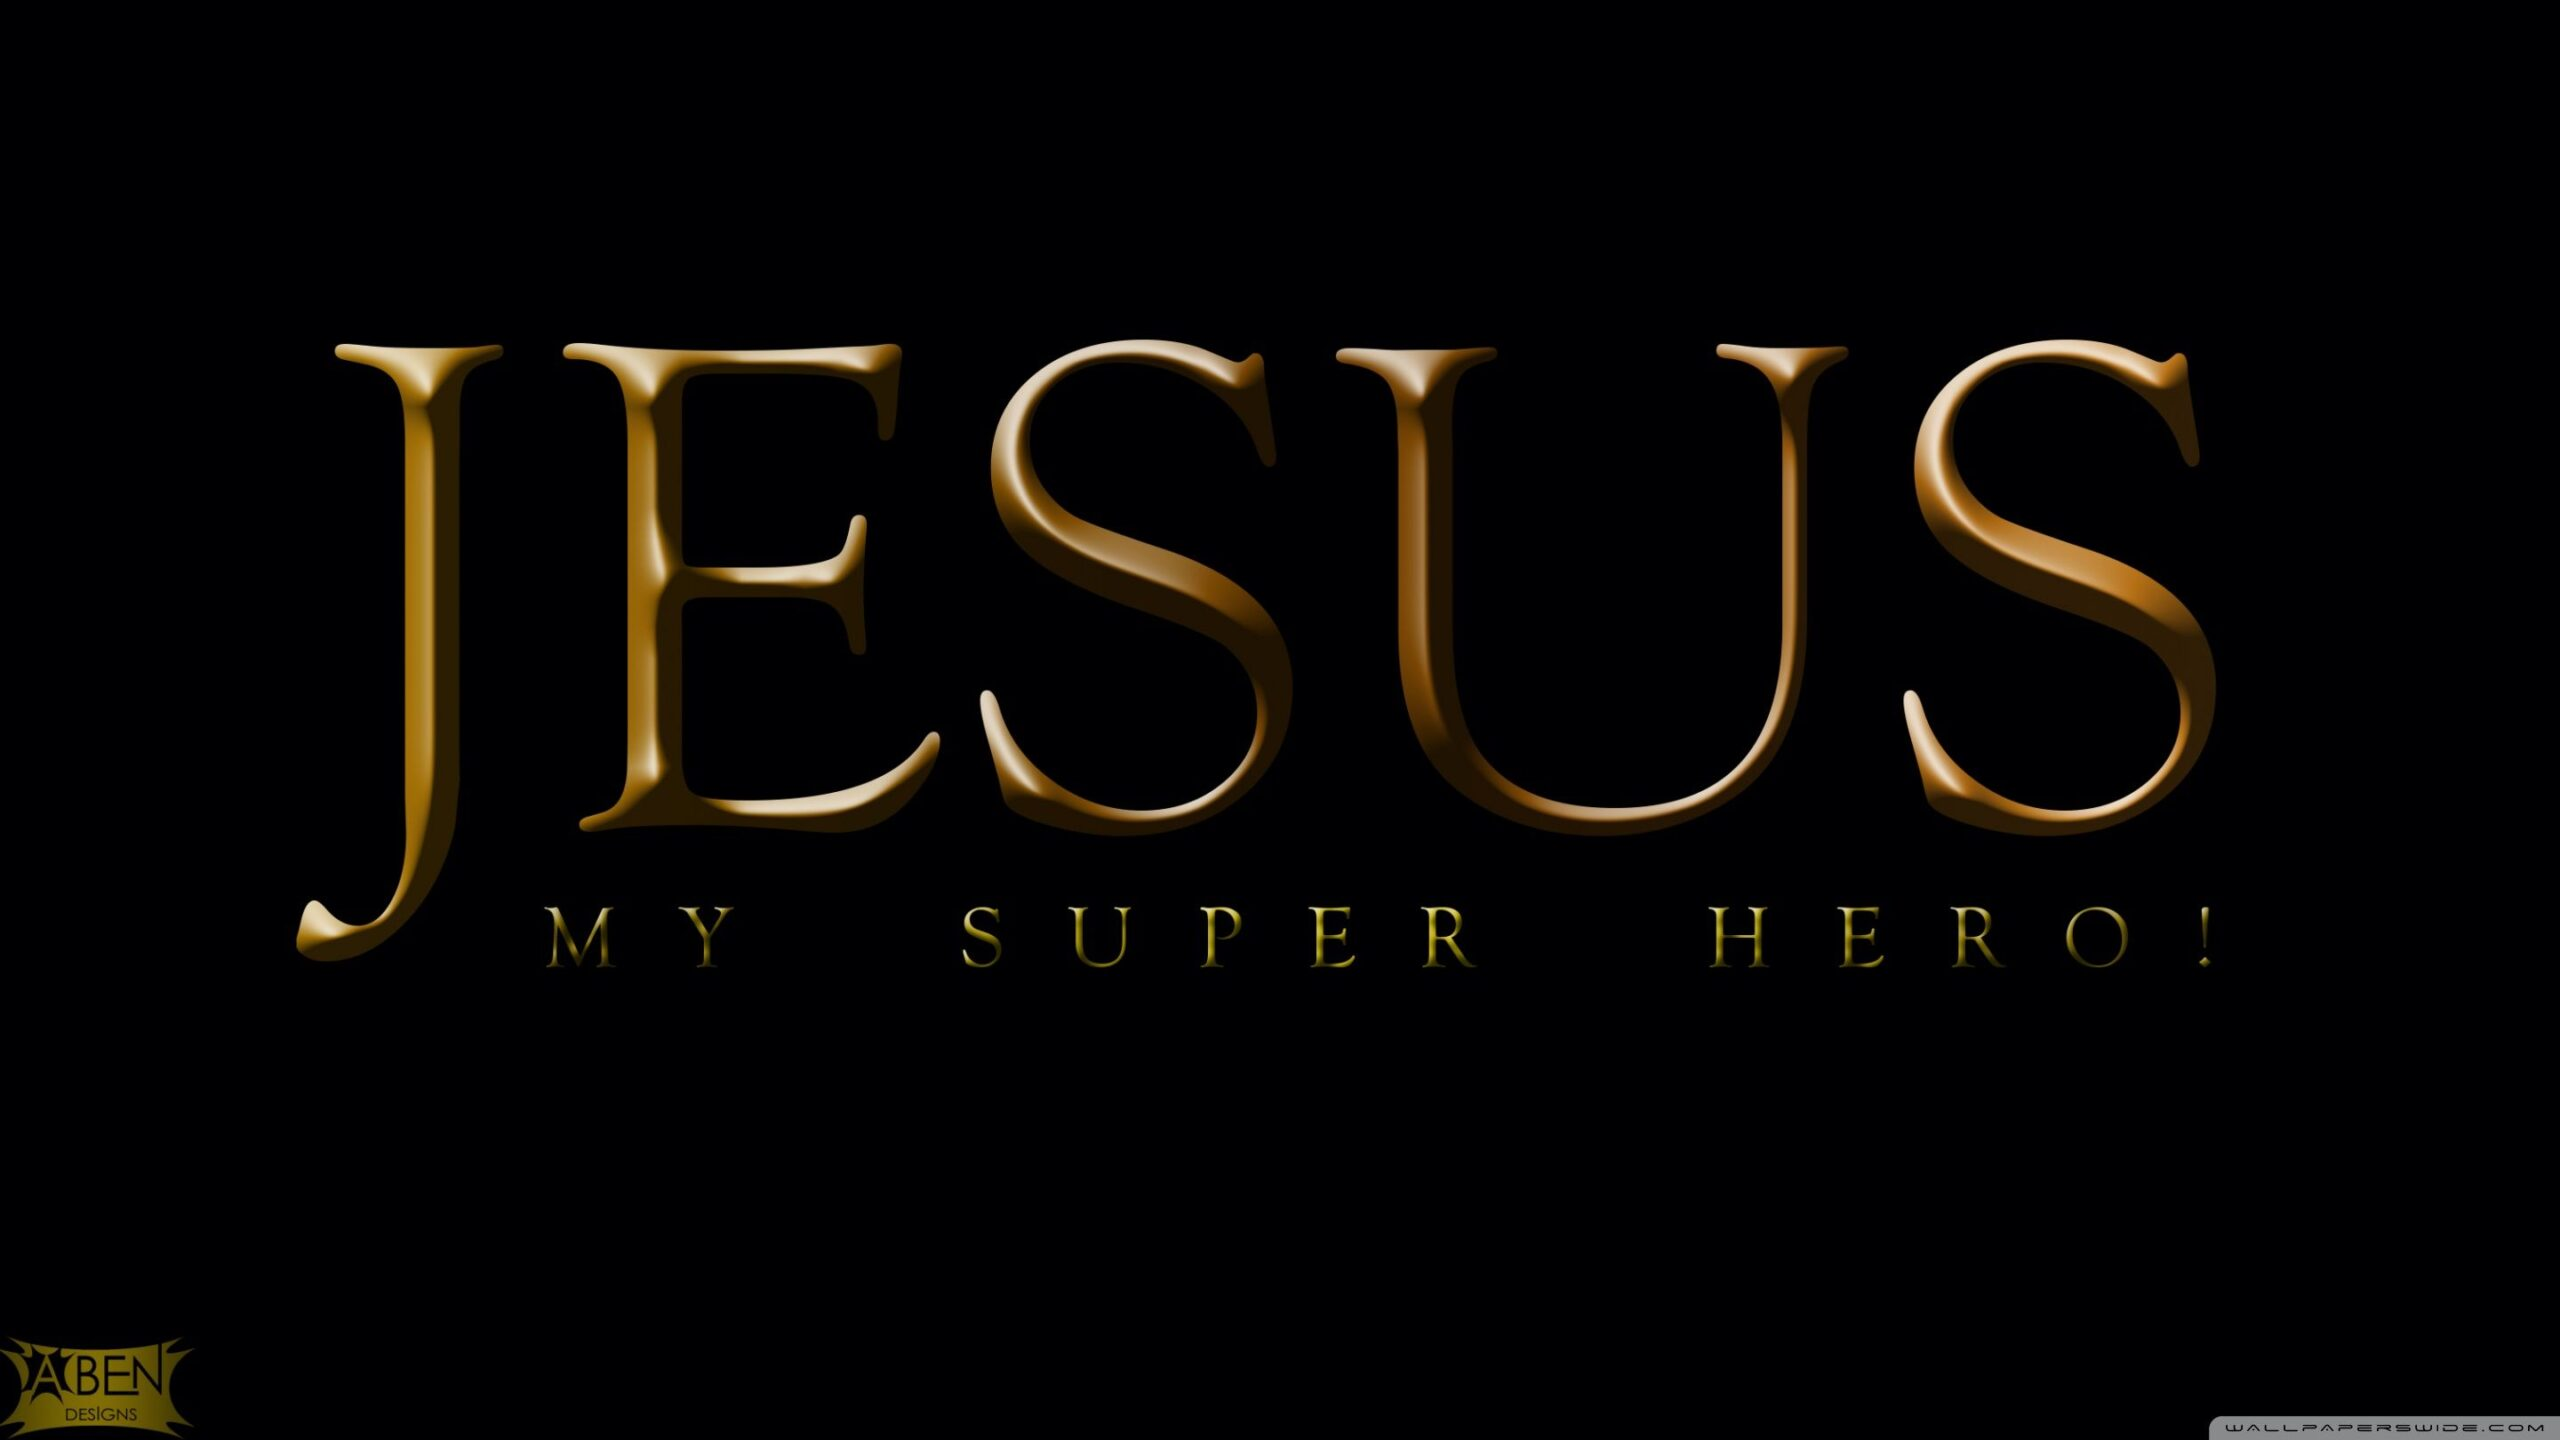 Jesus is the Mighty One-Super Hero